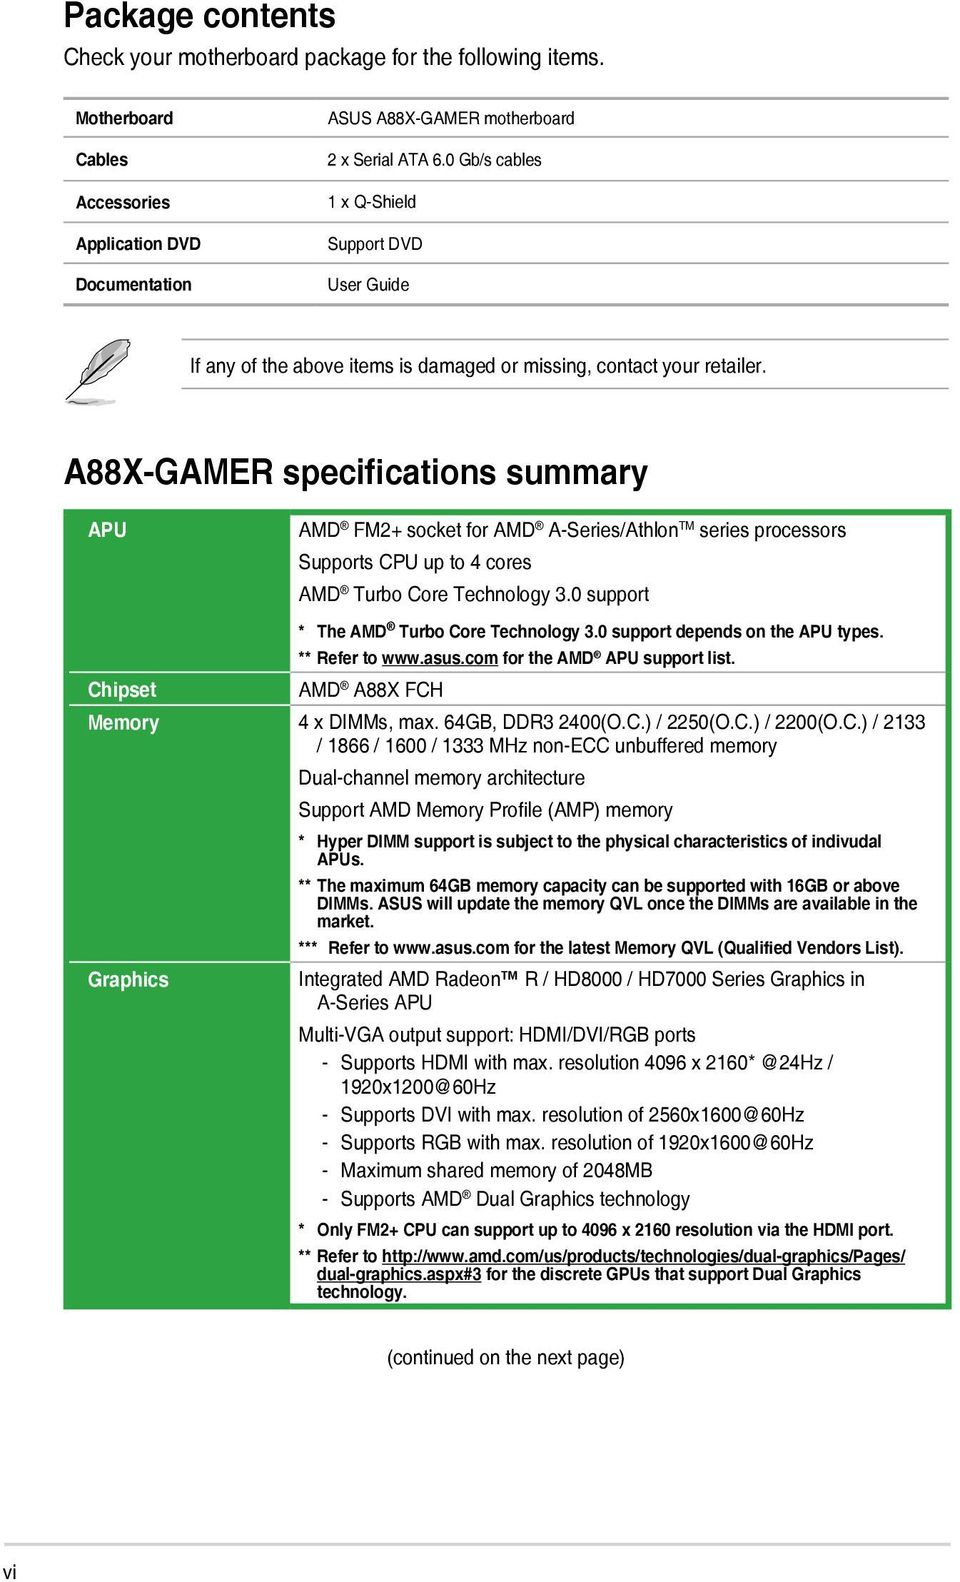 A88X-GAMER specifications summary APU AMD FM2+ socket for AMD A-Series/Athlon TM series processors Supports CPU up to 4 cores AMD Turbo Core Technology 3.0 support * The AMD Turbo Core Technology 3.